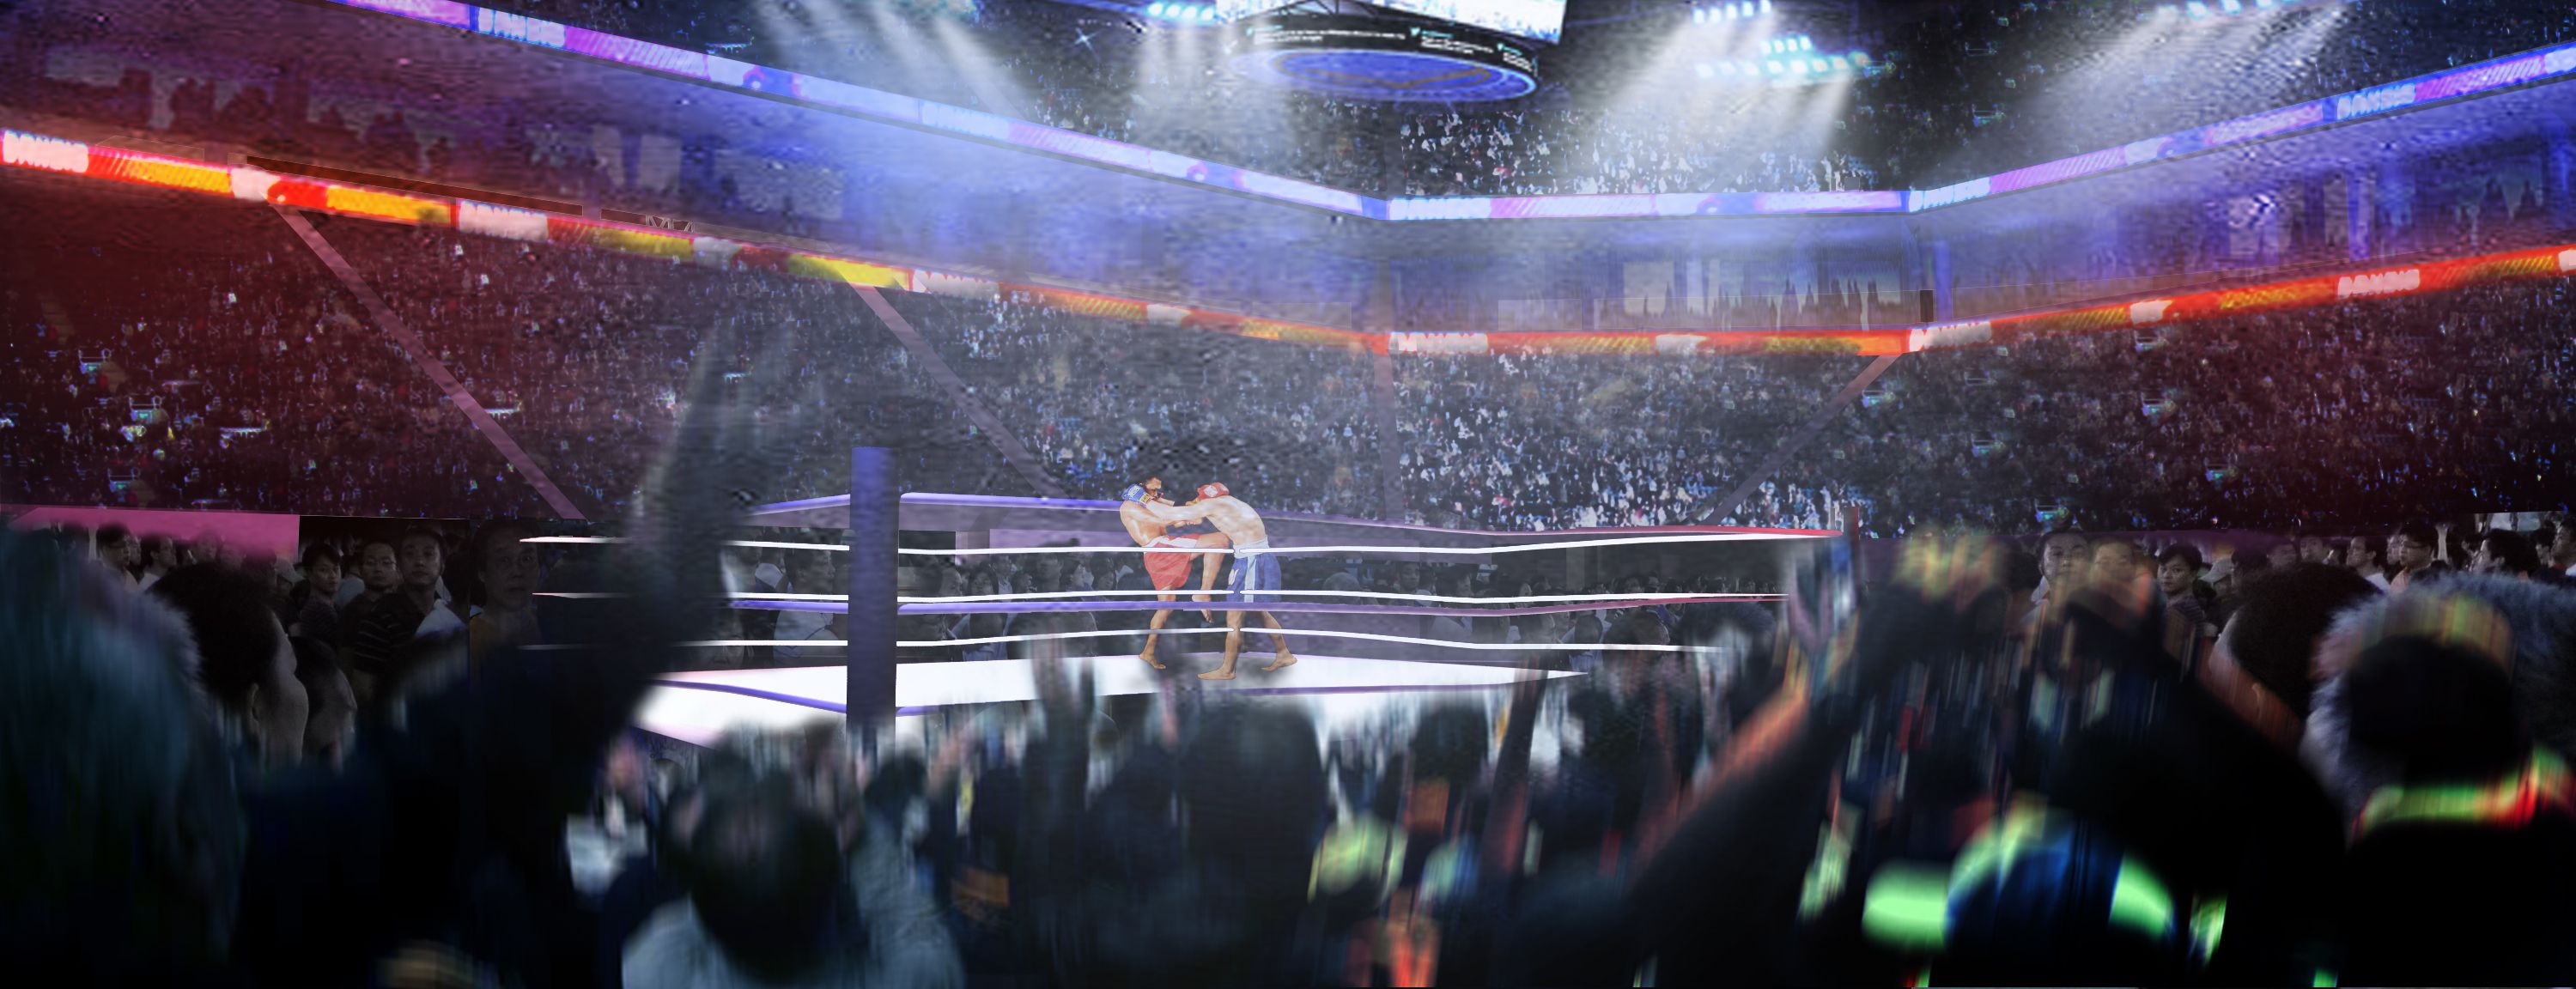 Pin By Tle Pichaya On Hlp International Boxing Arena Design Project Inda Iii Business District Arena Arenas